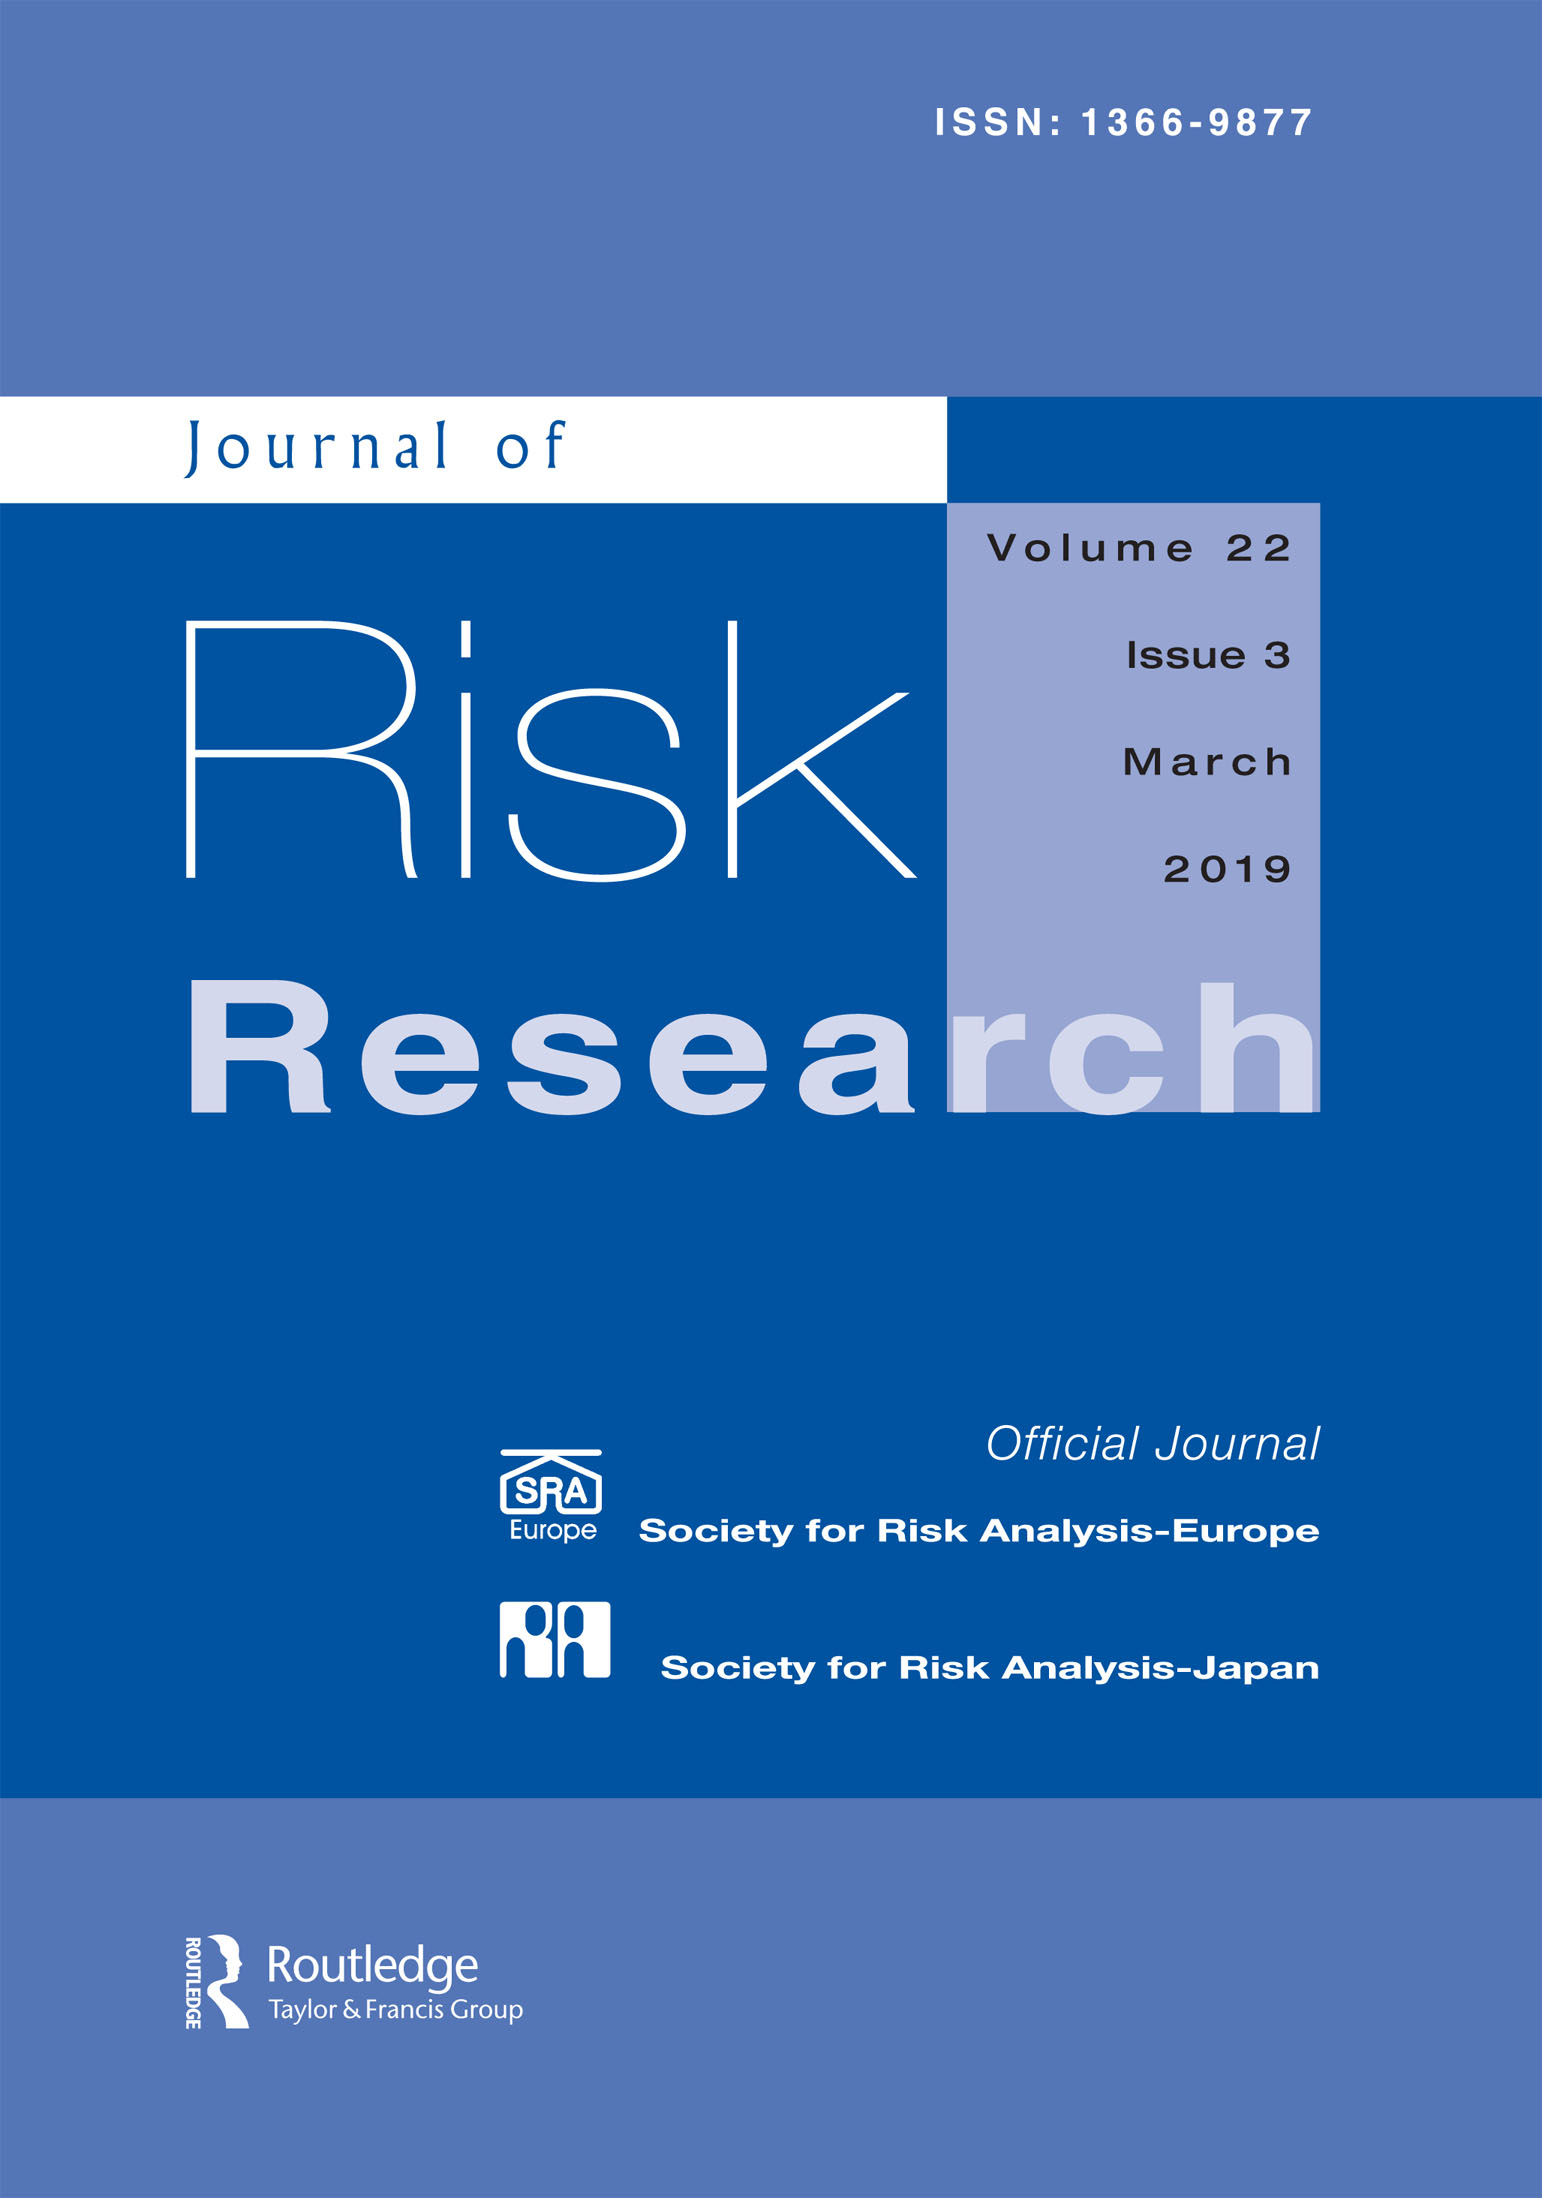 Full article: The new political importance of the old hurricane risk: a  contextual approach to understanding contemporary struggles with hurricane  risk and insurance